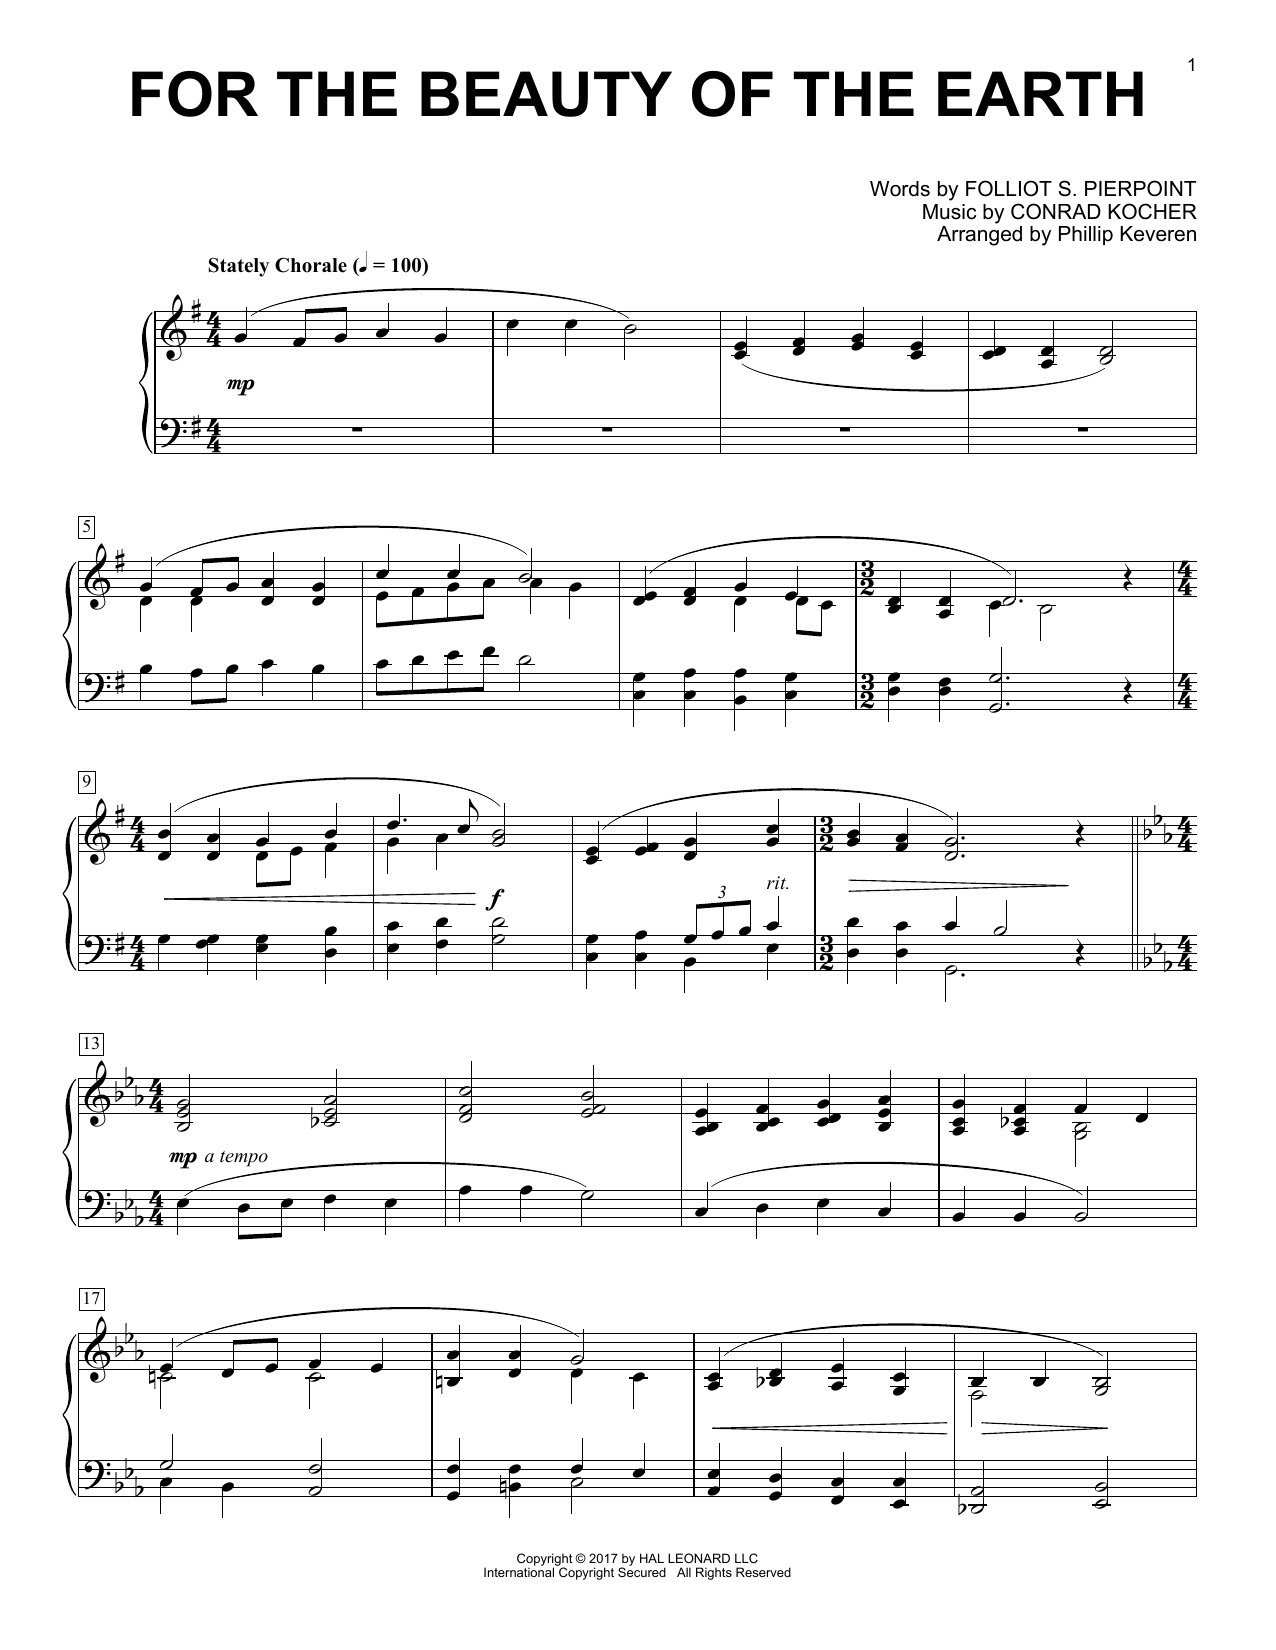 For The Beauty Of The Earth sheet music for piano solo by Folliot S. Pierpoint, Phillip Keveren and Conrad Kocher. Score Image Preview.